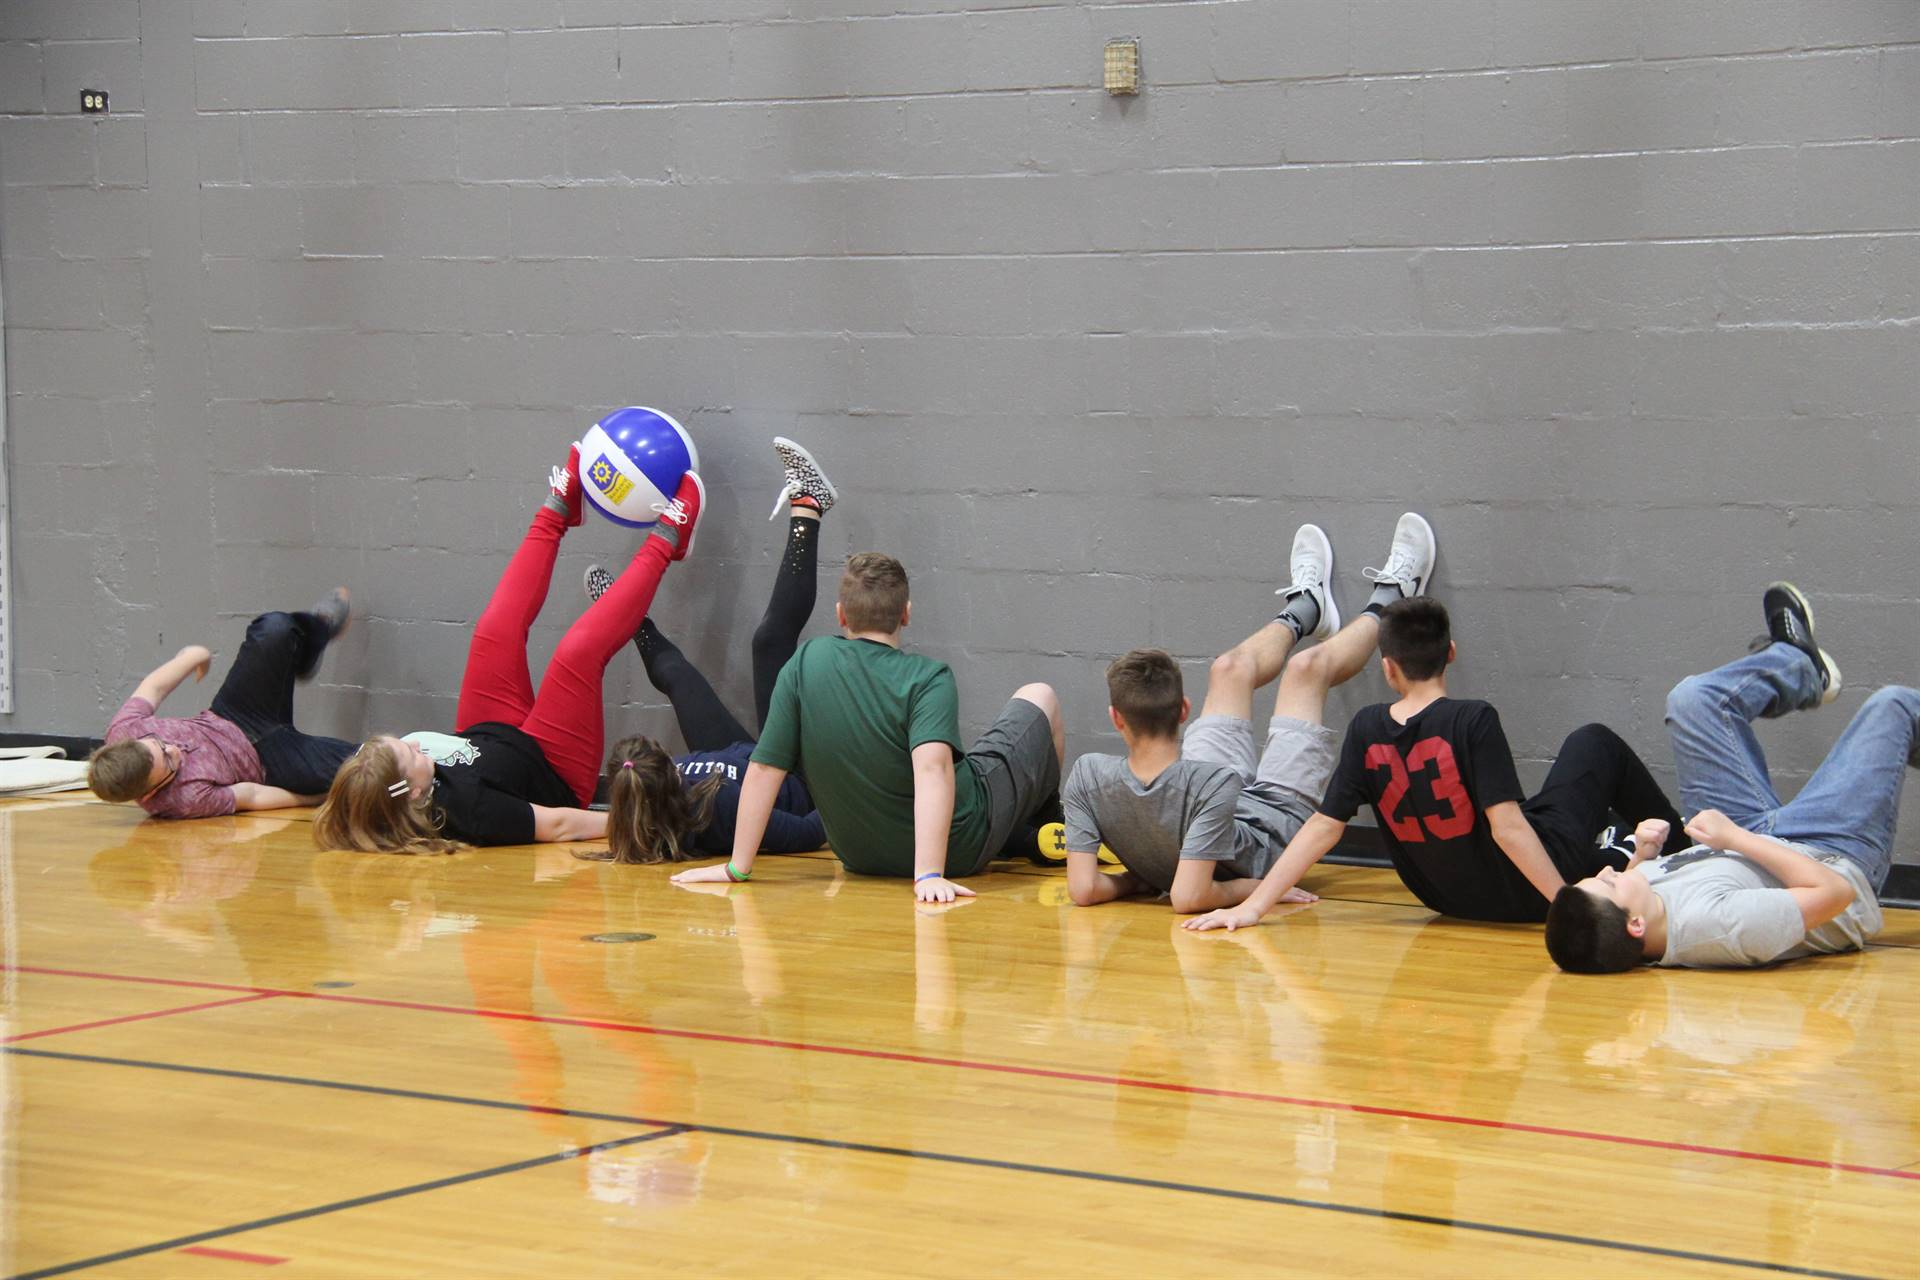 far shot of students working together to move ball with feet for teamwork challenge